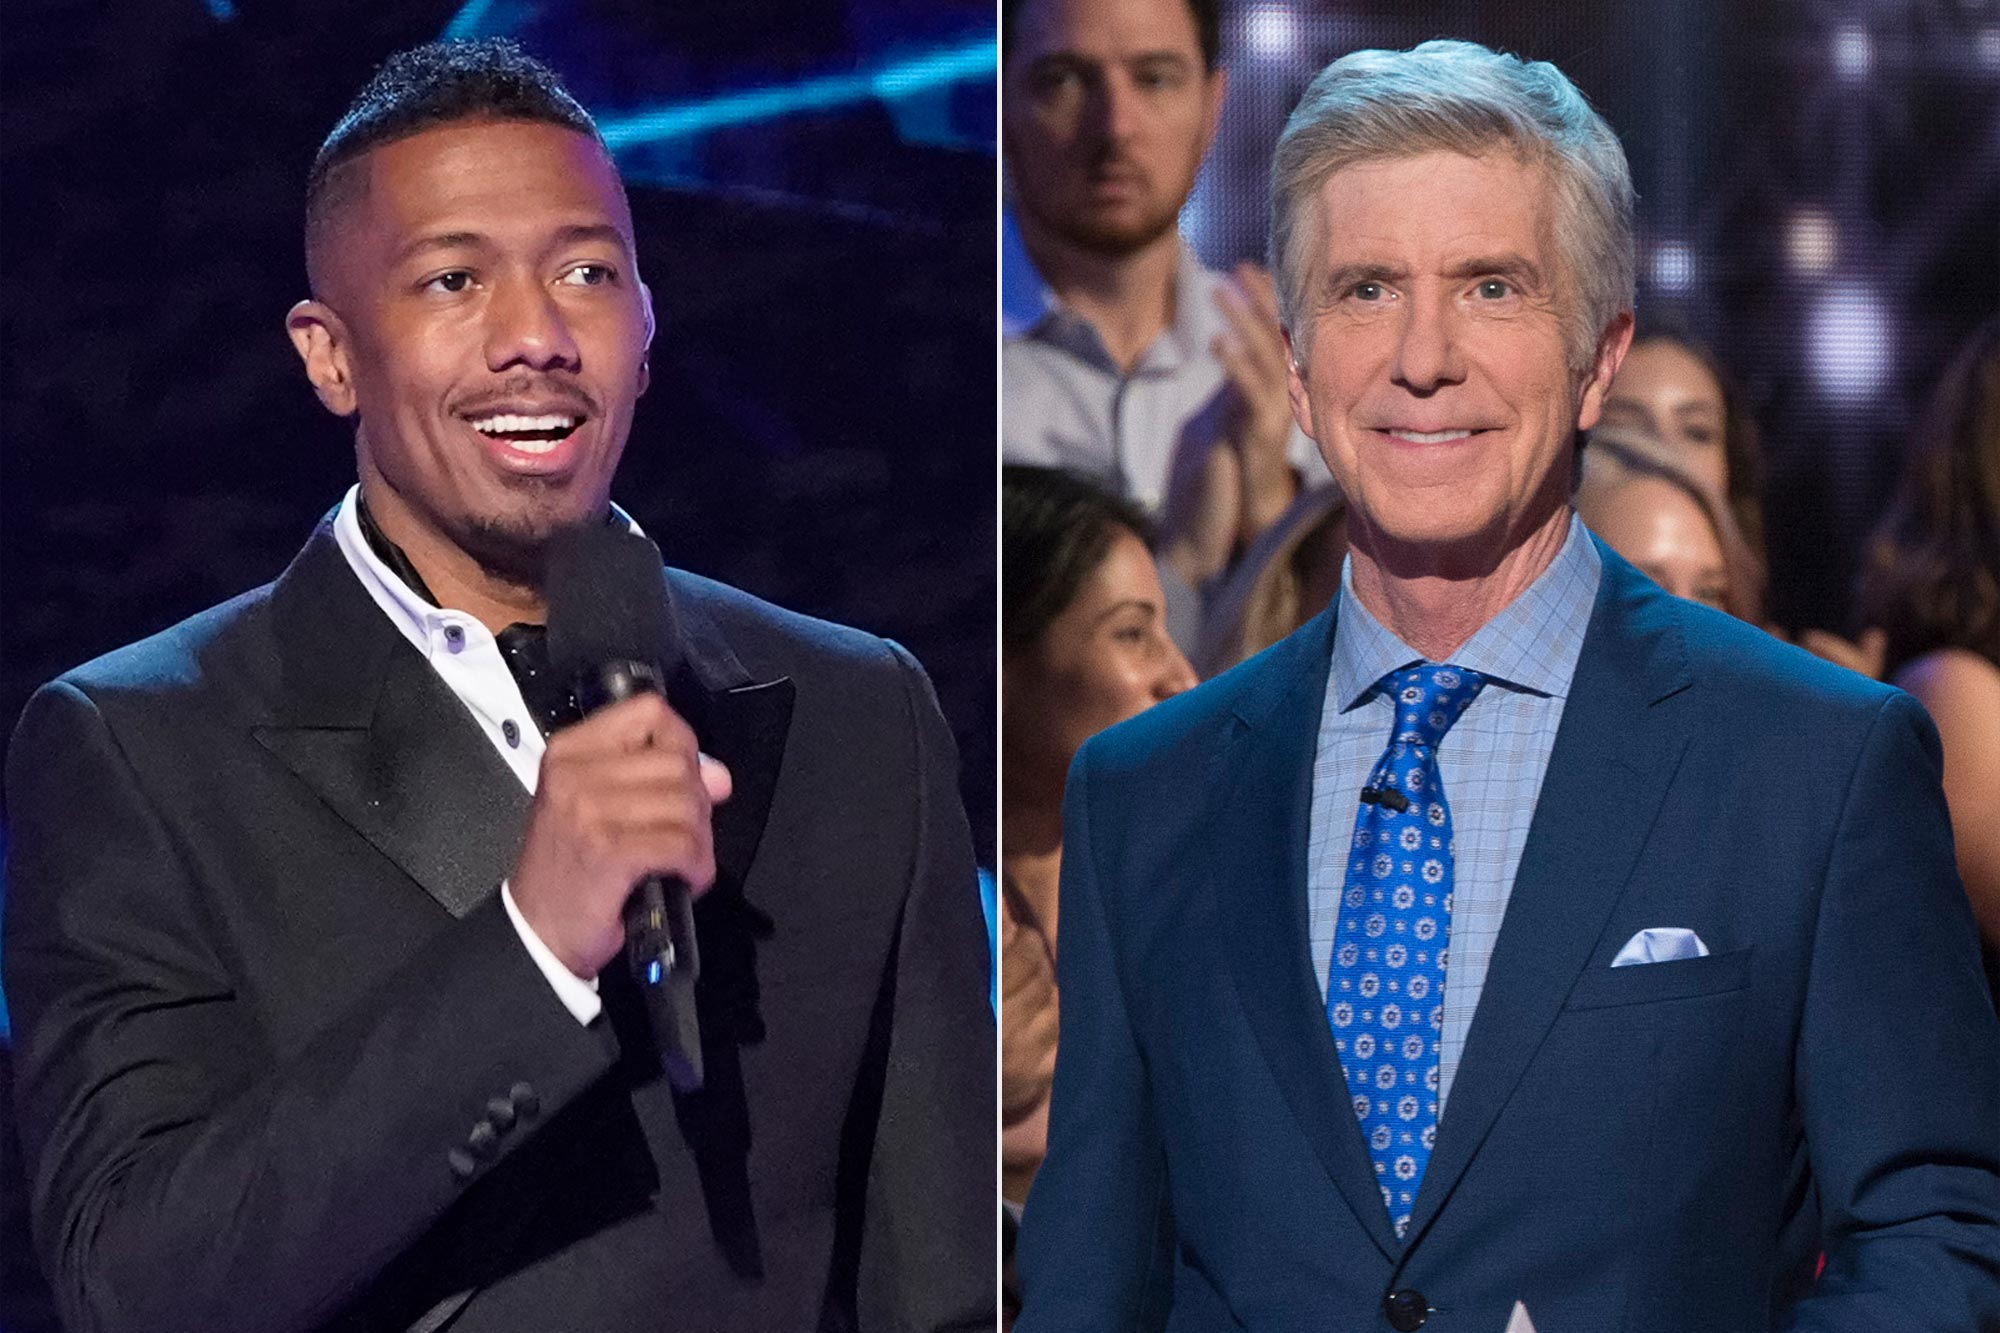 If The Masked Singer Cuts Ties With Nick Cannon Fox Should Hire Tom Bergeron Ew Com